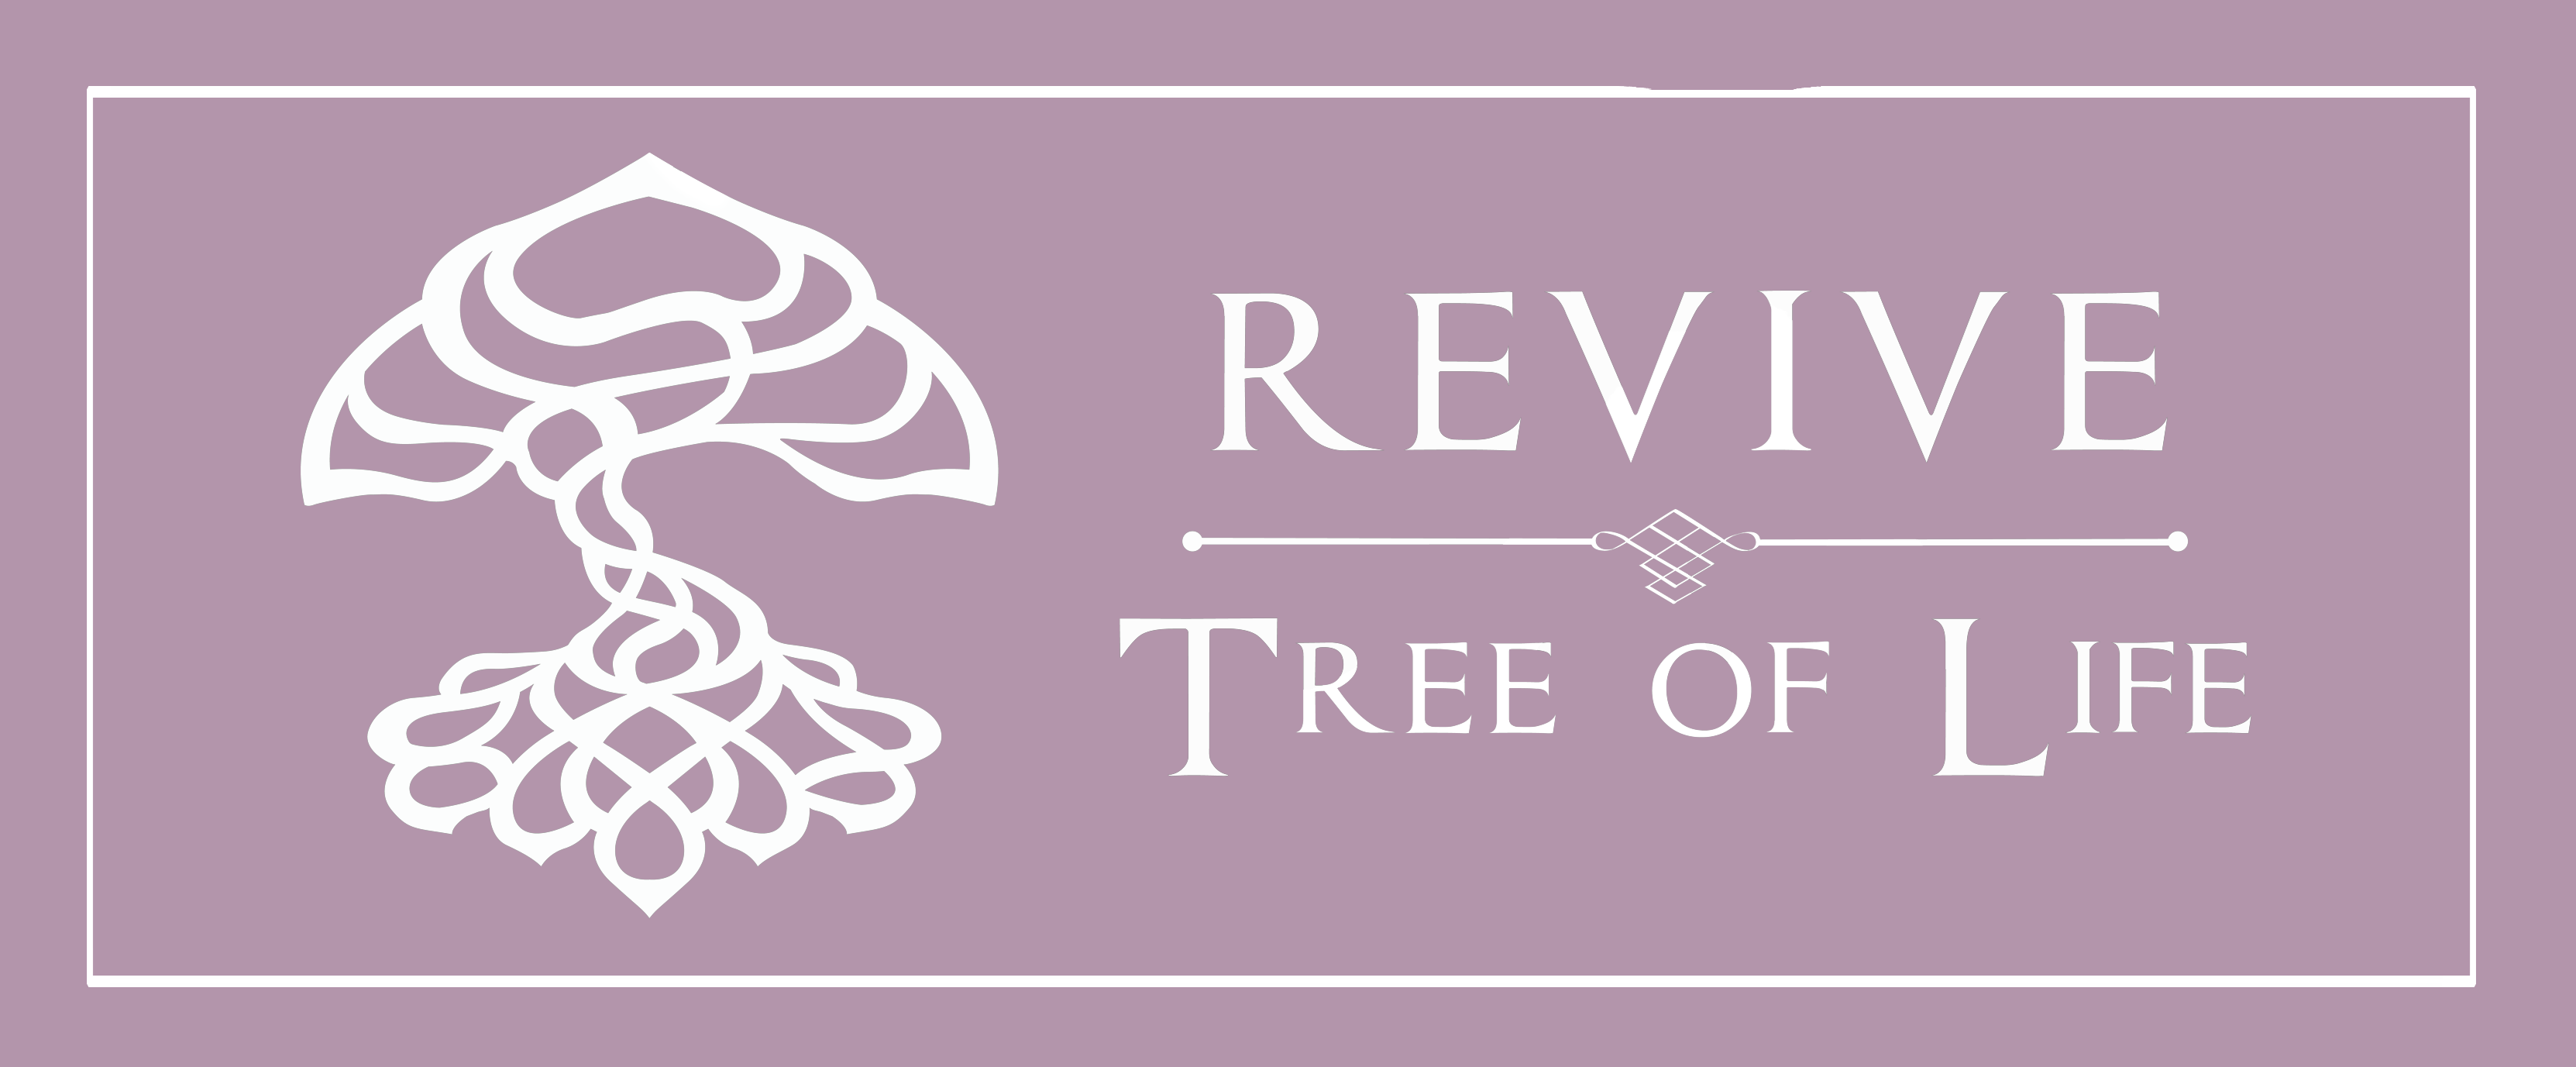 Revive Tree of Life